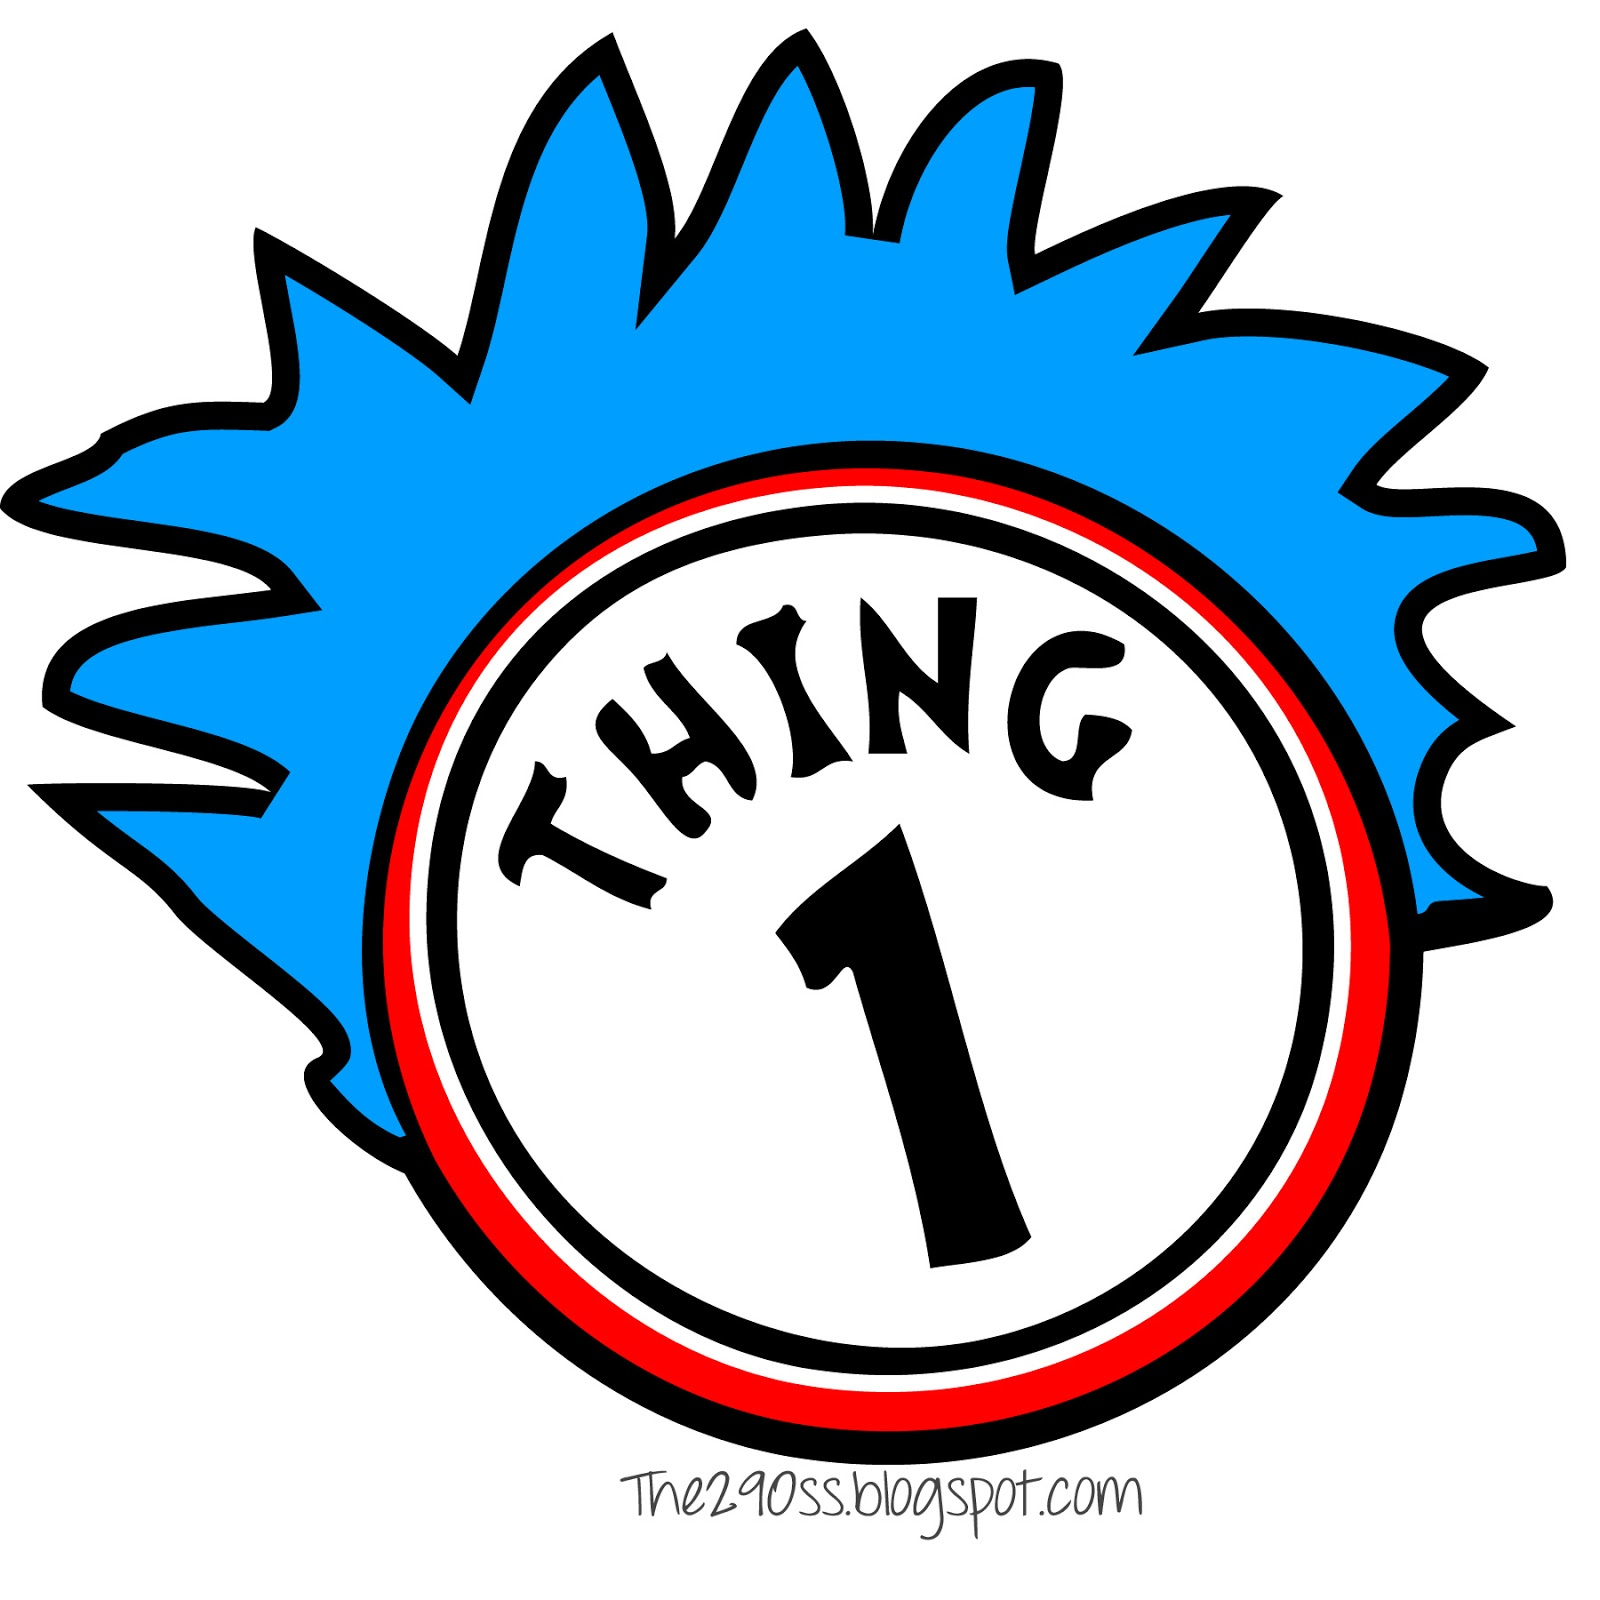 graphic regarding Thing 1 and Thing 2 Printable Cutouts called Factor 1 And Factor 2 Clipart Absolutely free obtain least difficult Issue 1 And